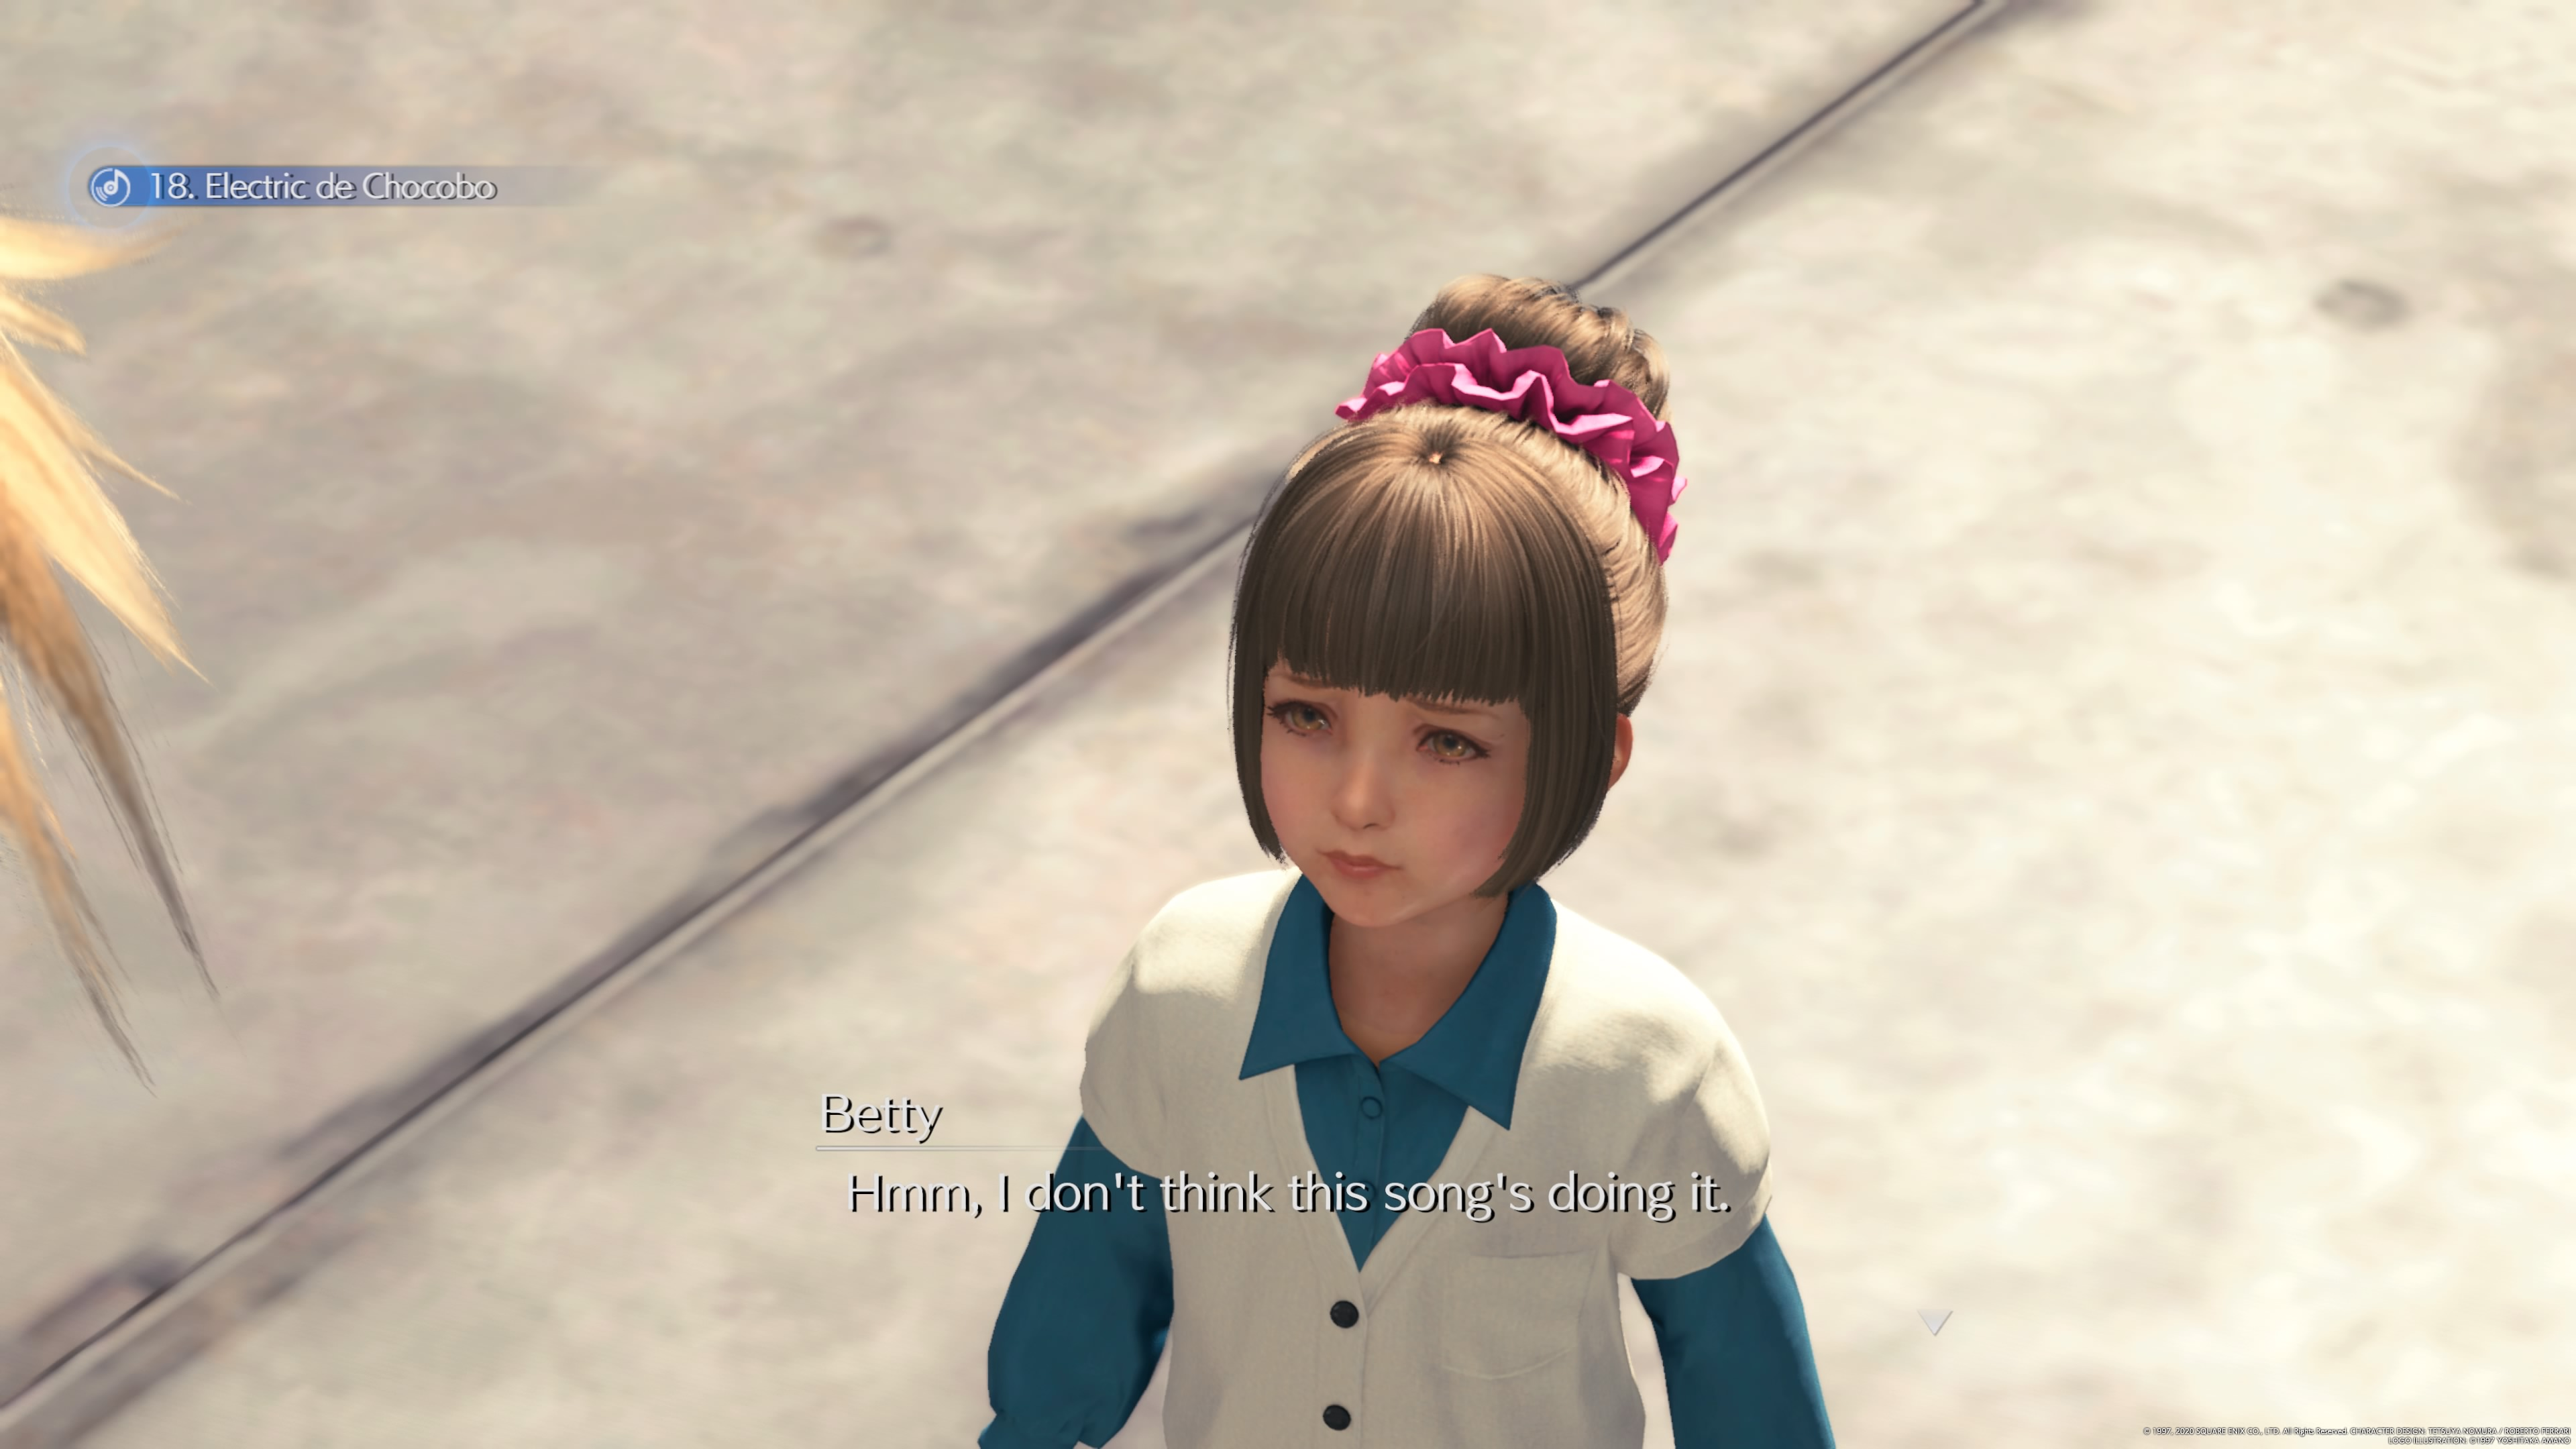 Betty from Final Fantasy 7 Remake